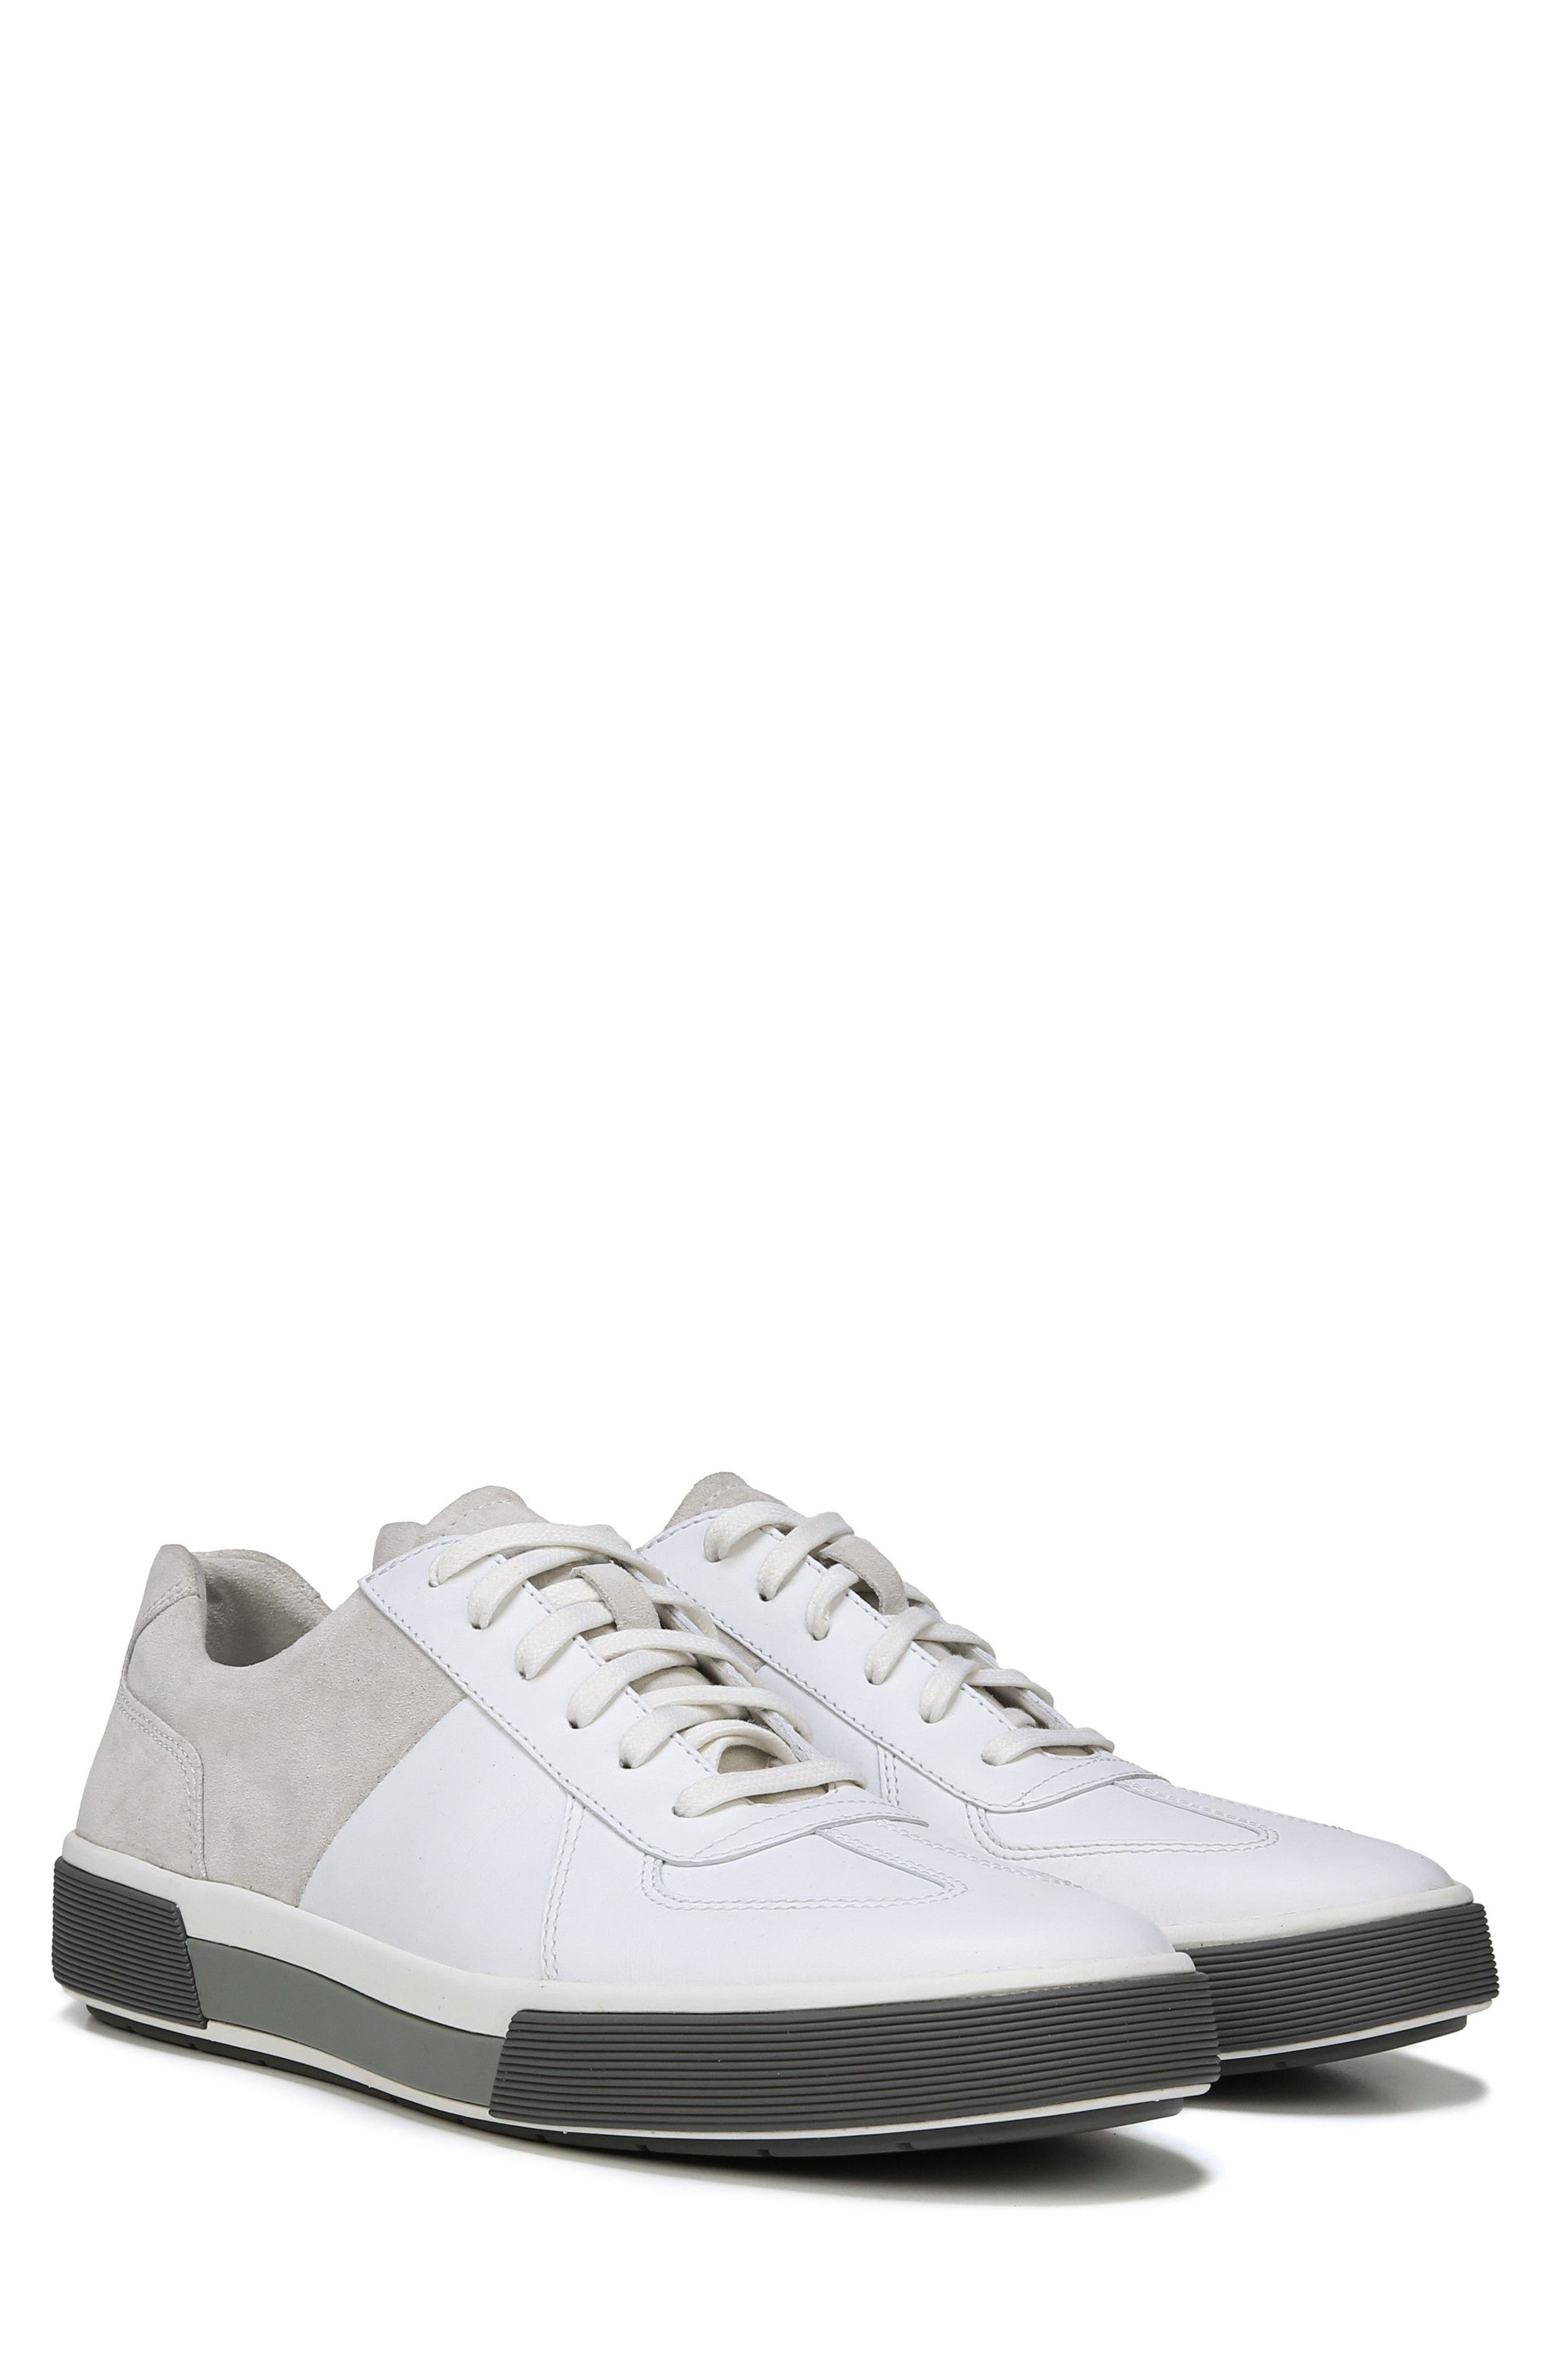 Rogue Low Top Sneaker,                             Alternate thumbnail 6, color,                             WHITE/ HORCHATA